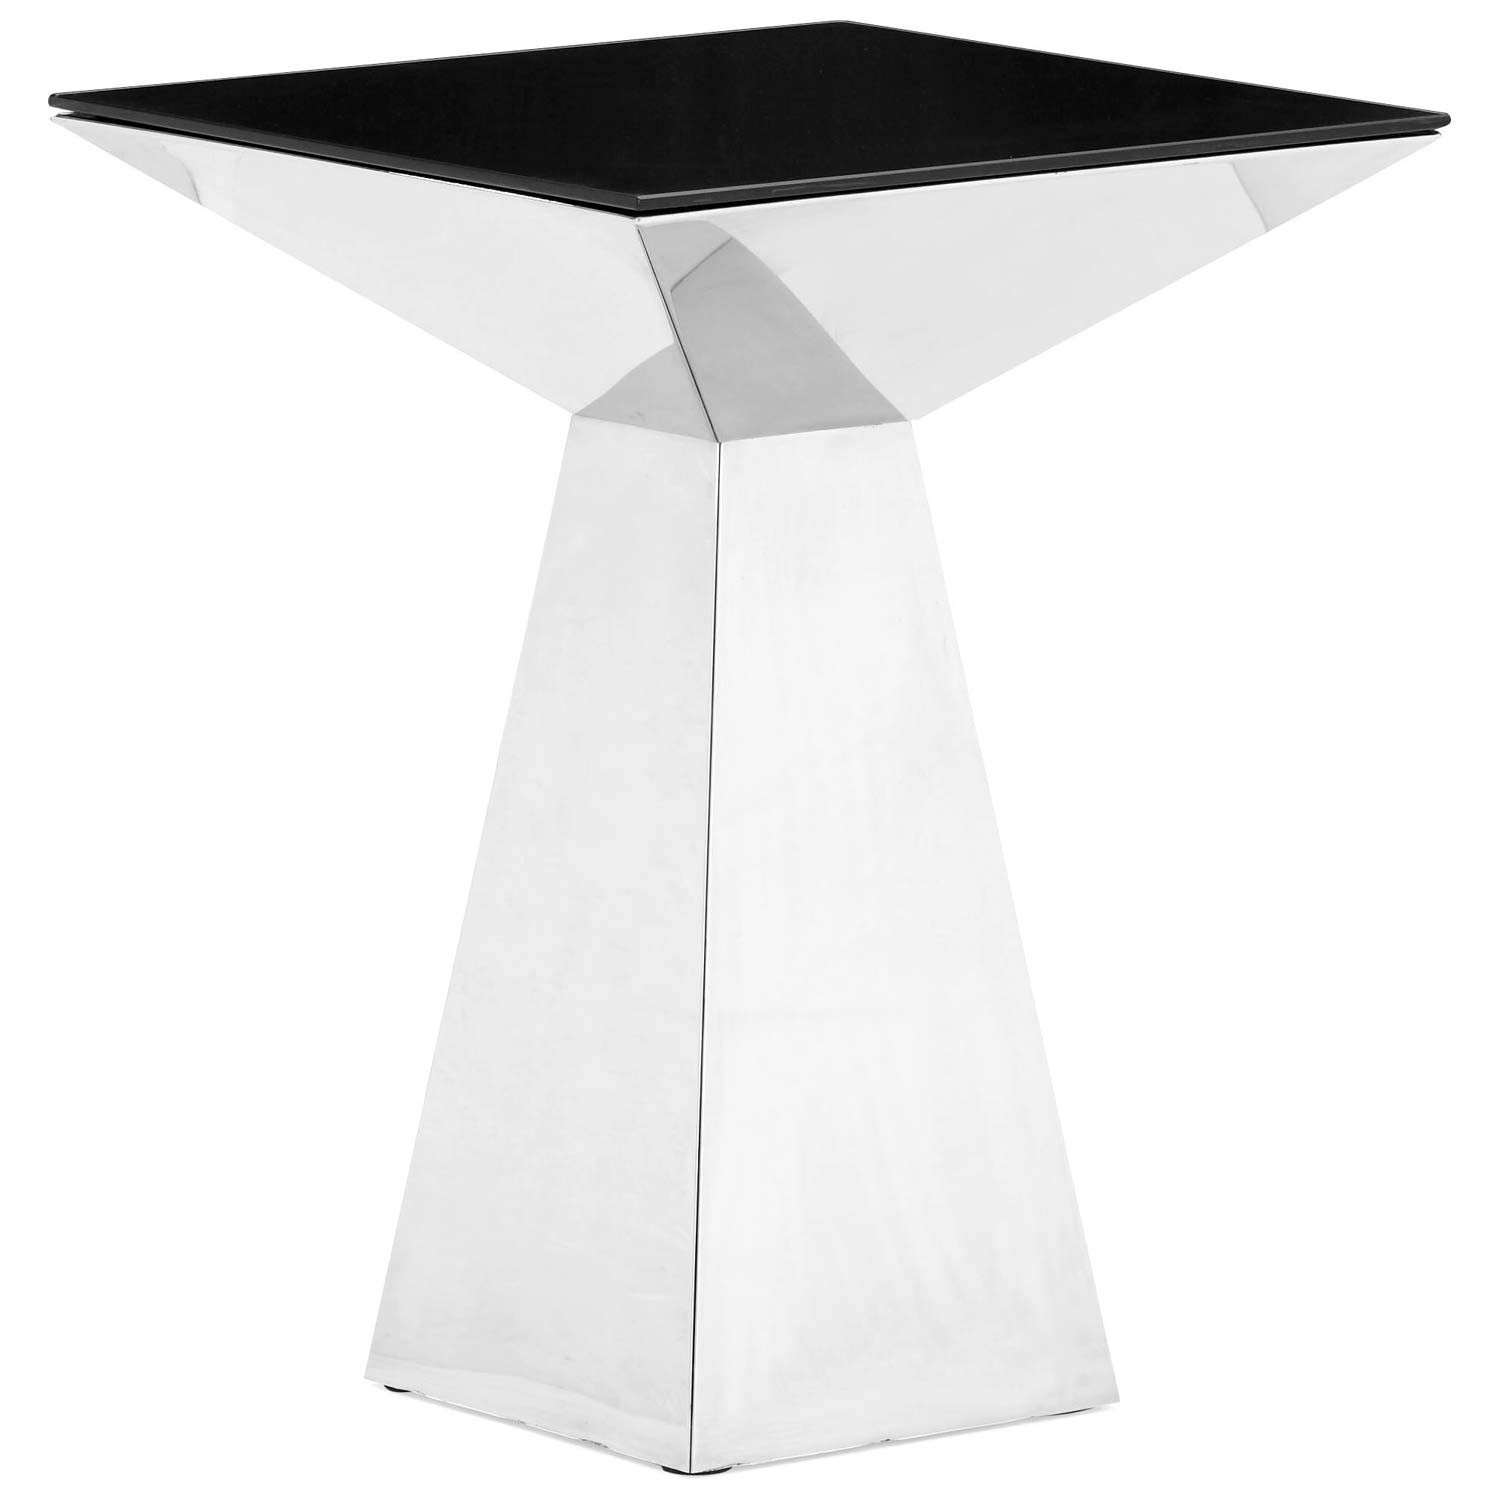 Tyrell Tall End Table - Painted Tempered Glass, Stainless Steel